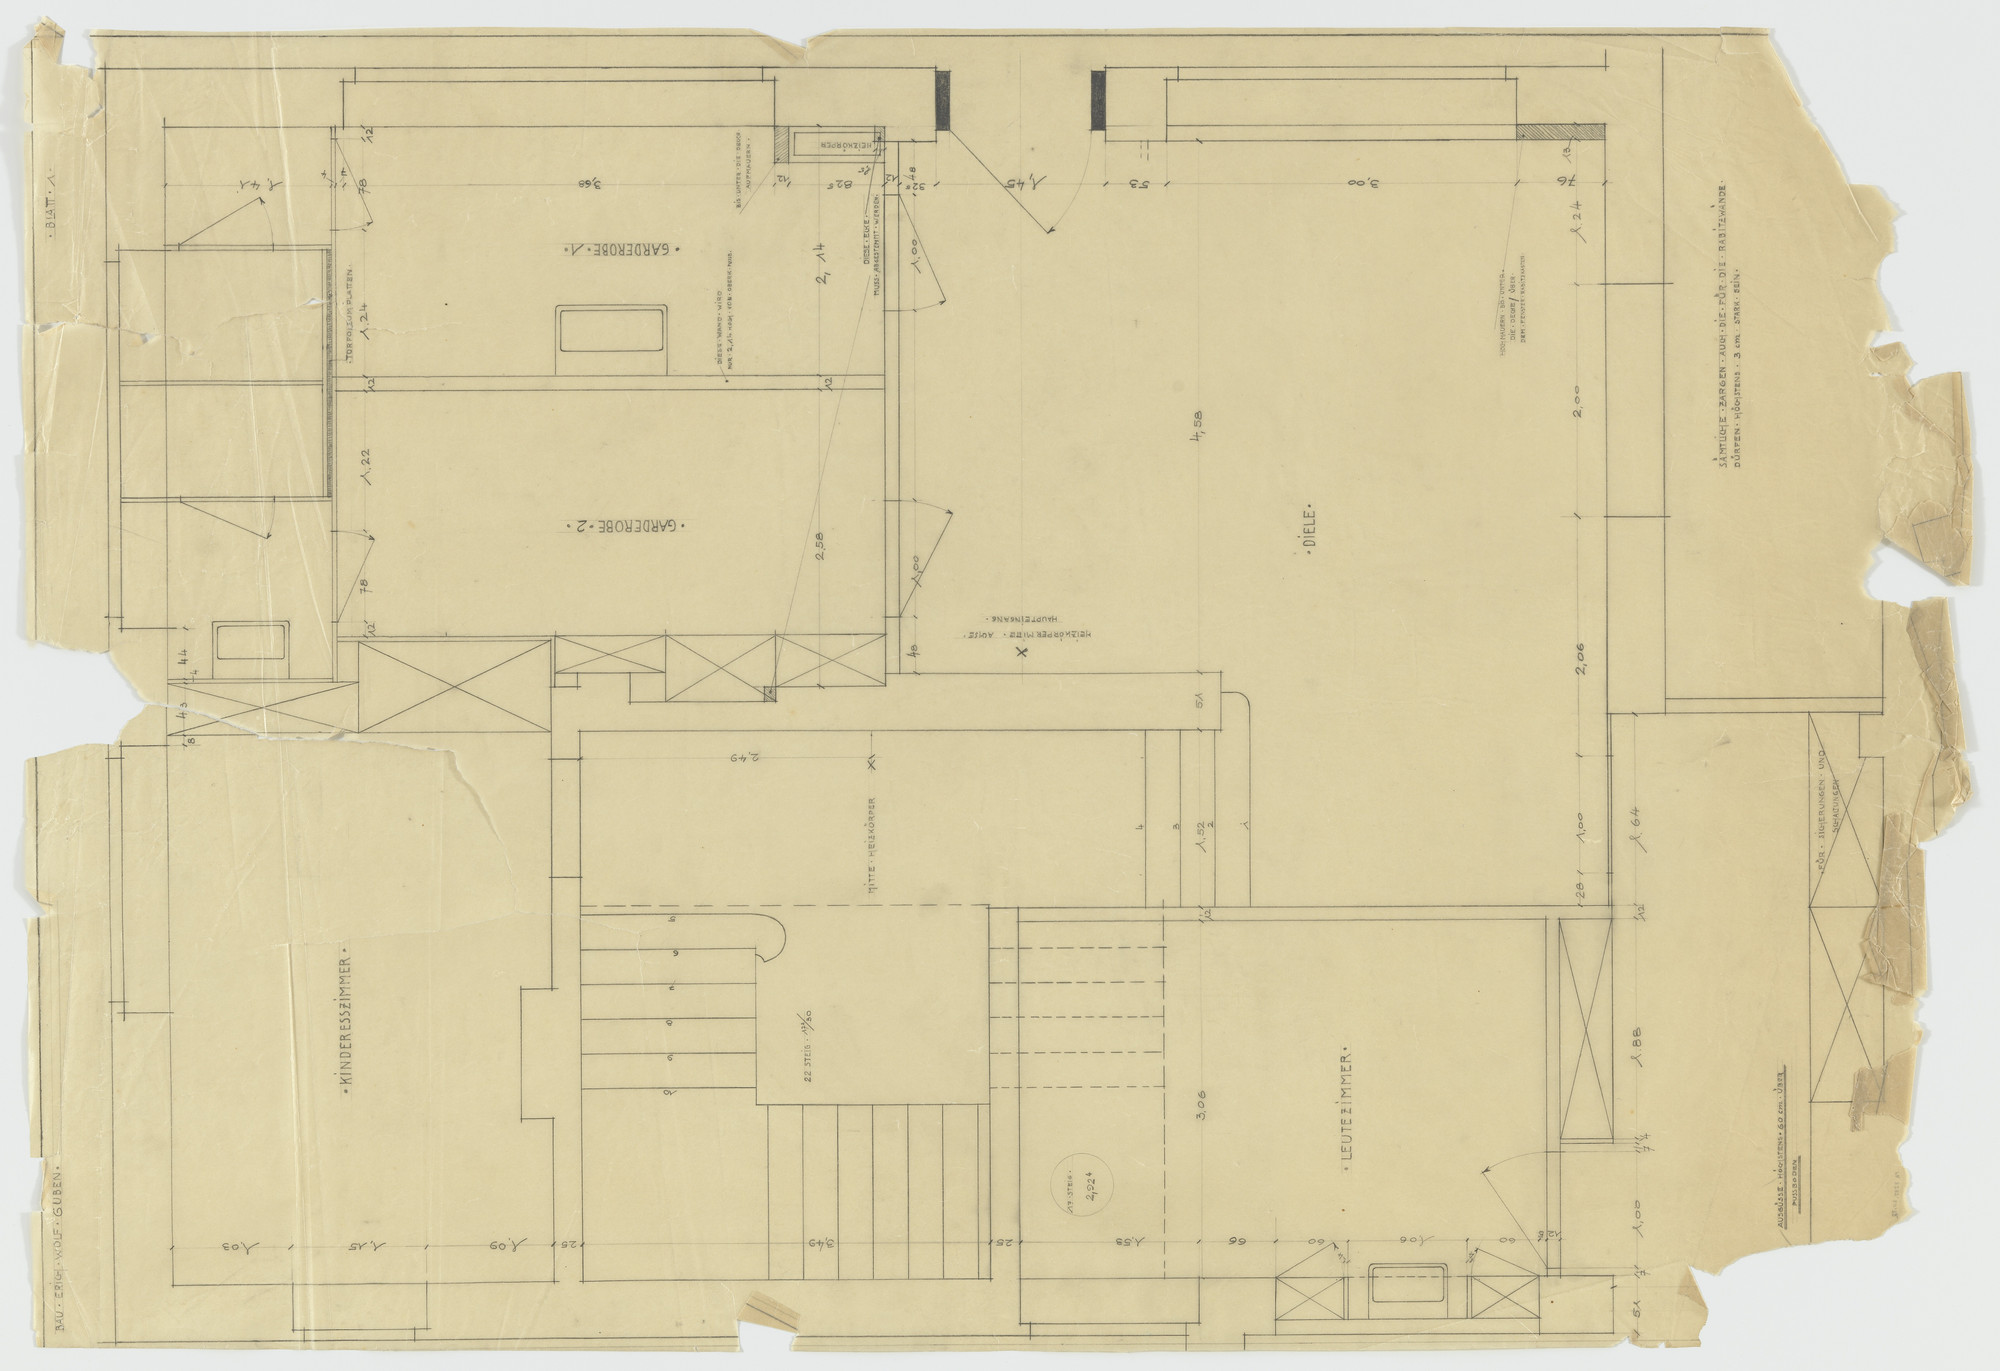 Ludwig Mies van der Rohe. Wolf House, Gubin, Poland (Plan: ground floor entrance area). 1925-1927